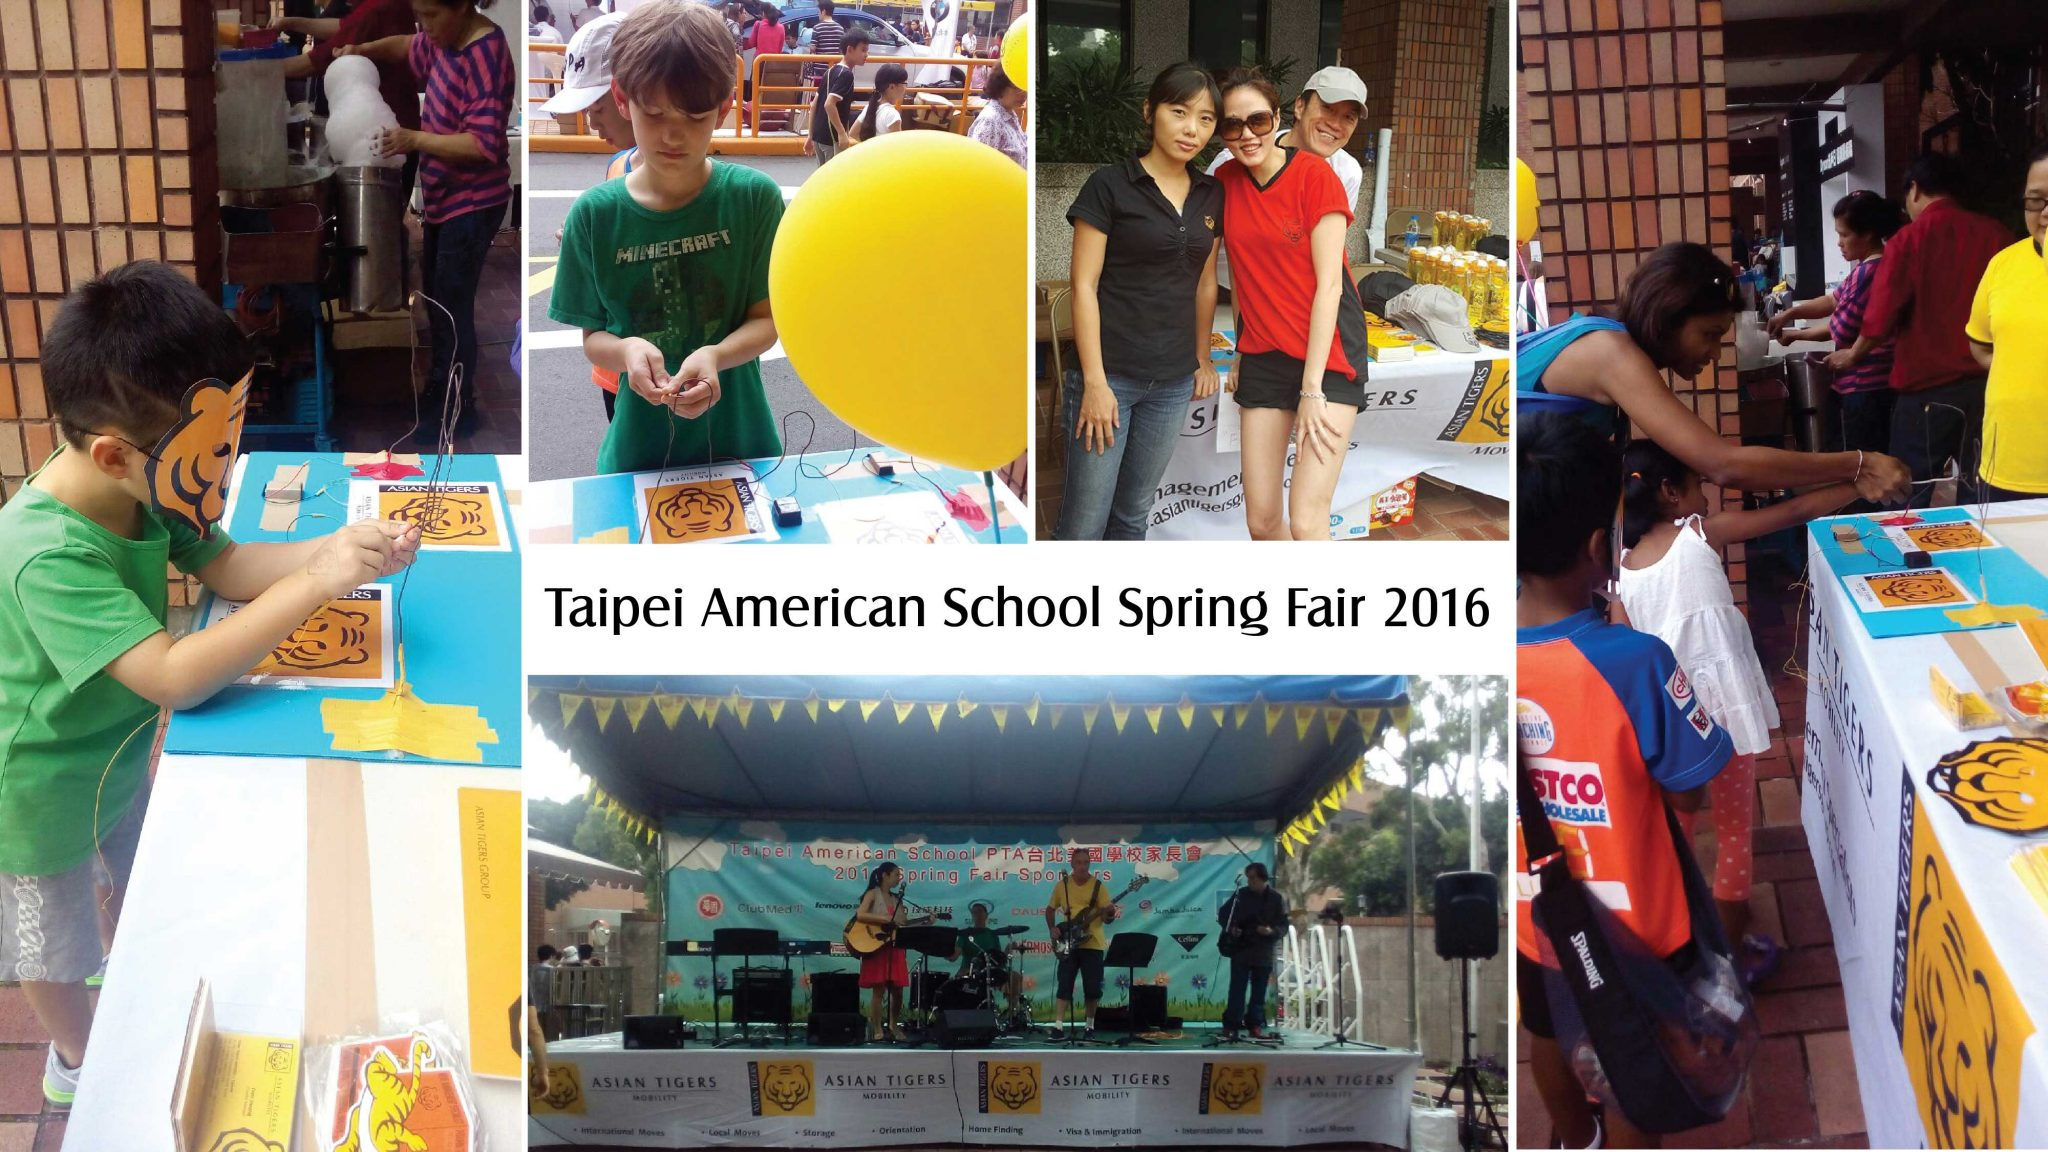 Children enjoy Taipei American School Spring Fair 2016 supported by Asian Tigers Mobility